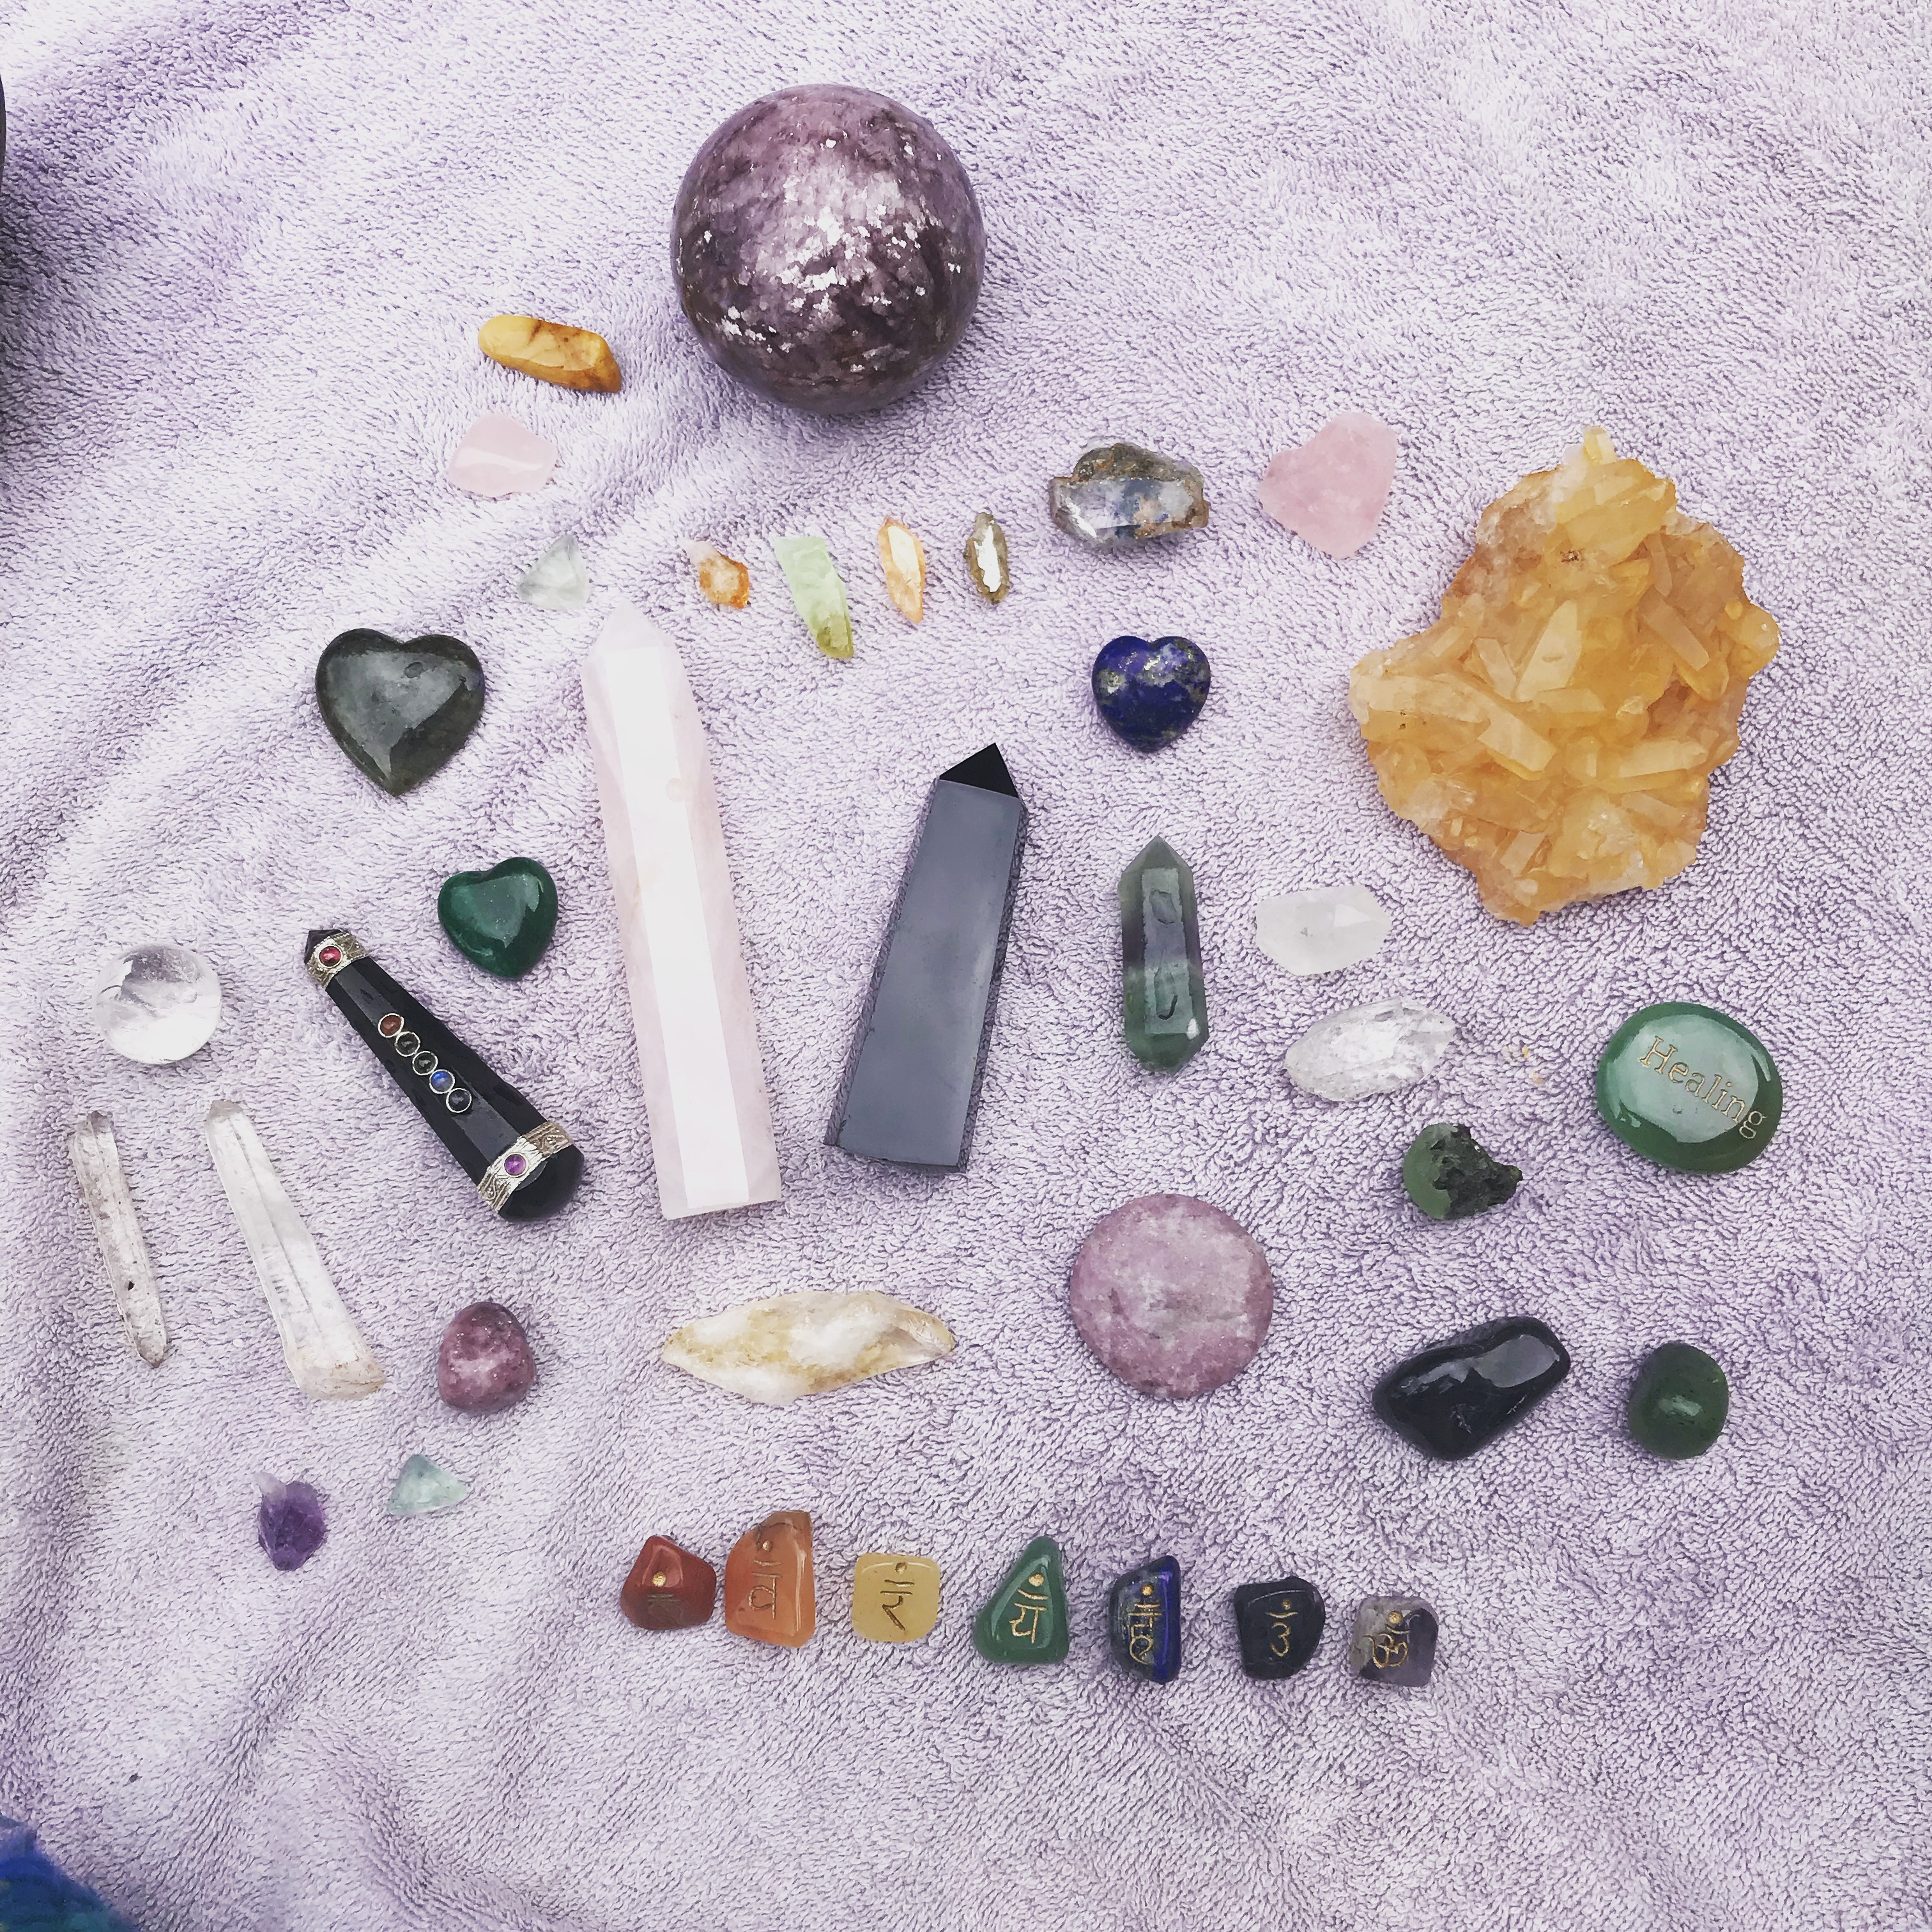 Full Moon Crystal Cleanse | In Body Being